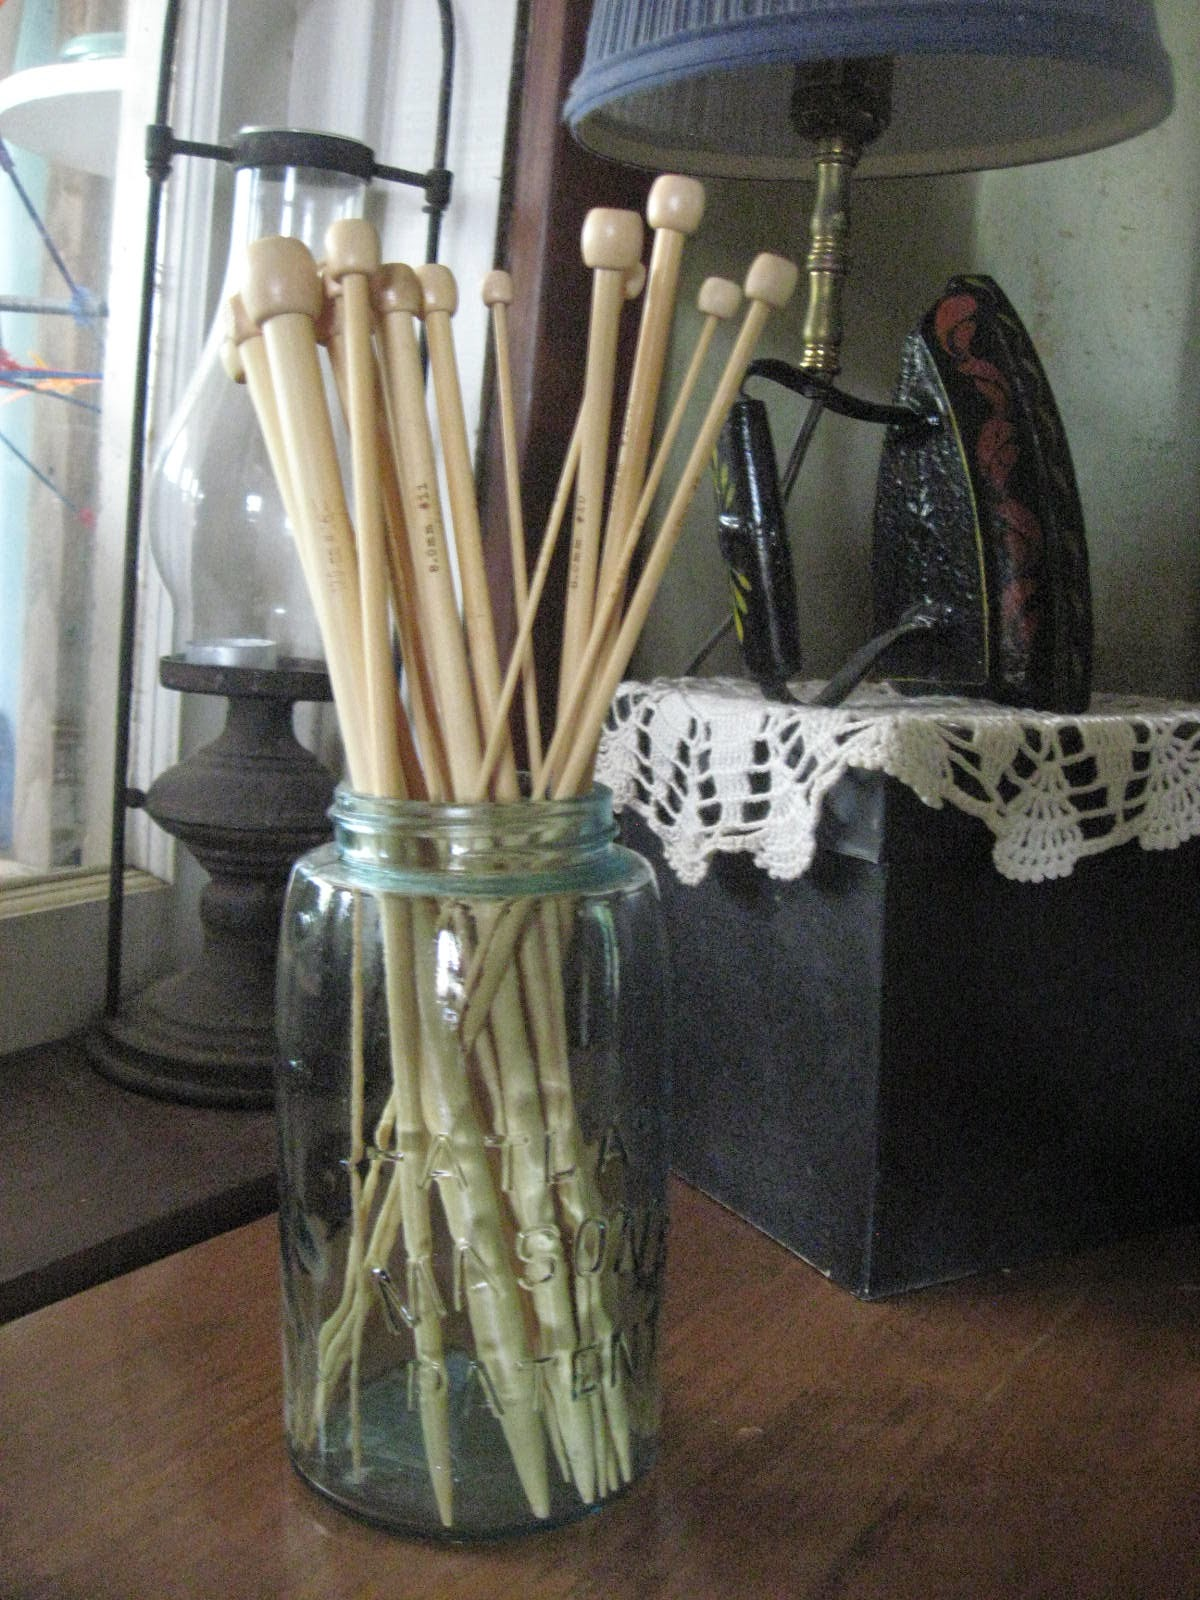 Simply Organized Homemaking: Using Glass Jars in Your Home